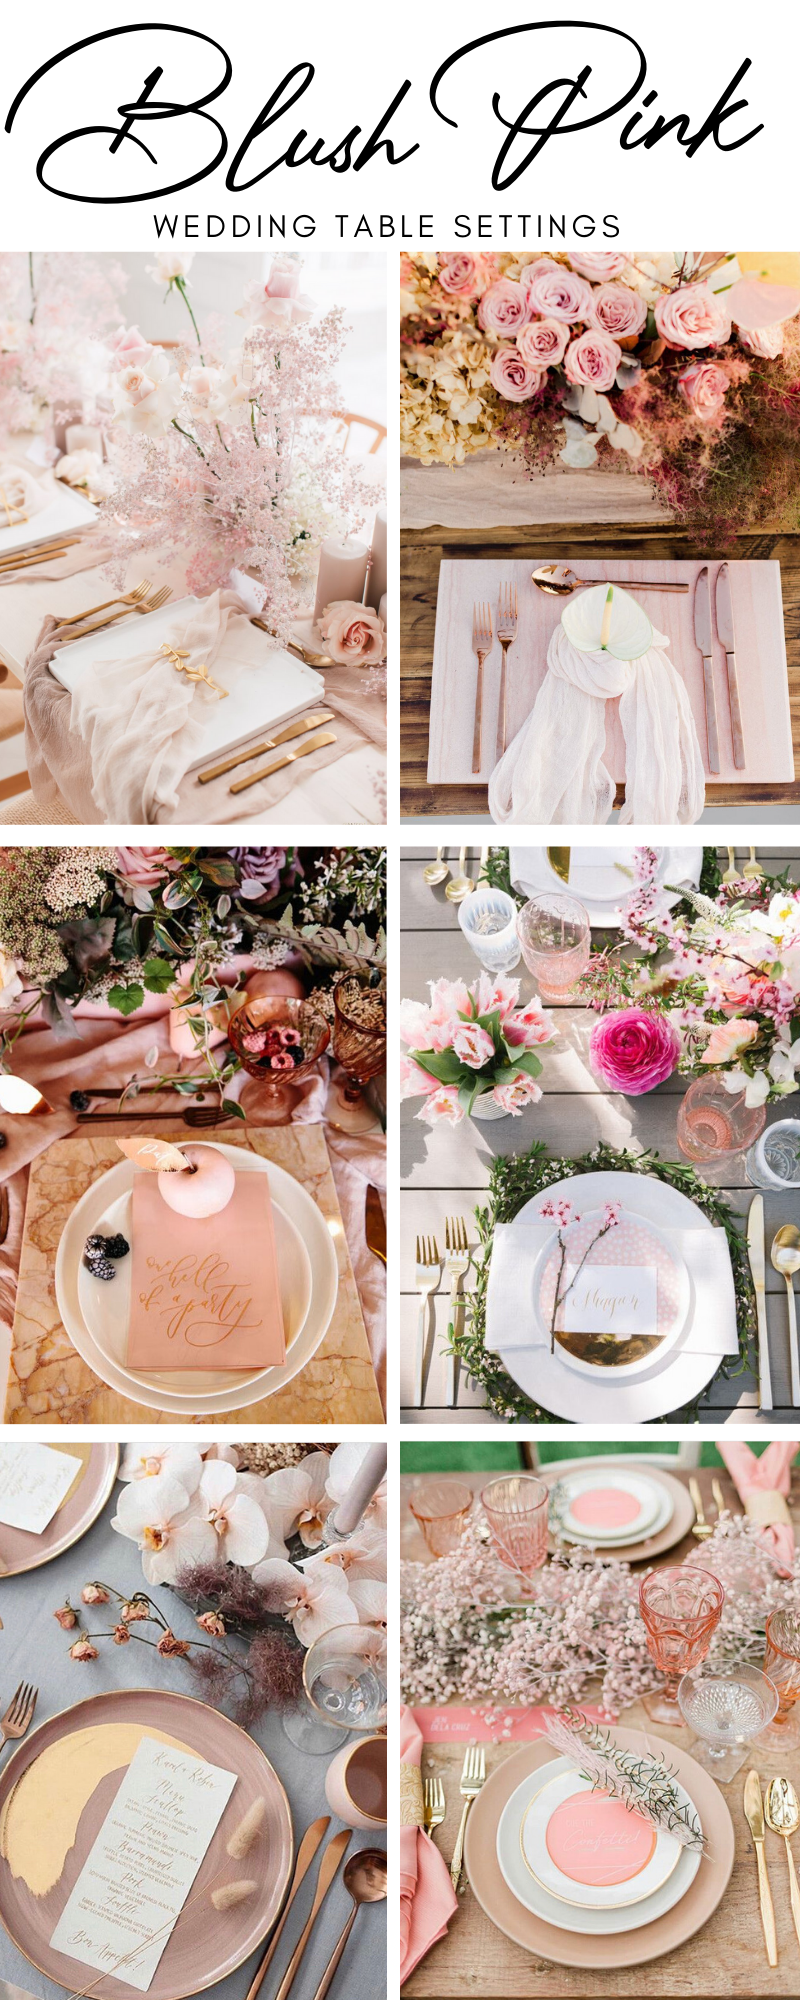 blush pink wedding table settings